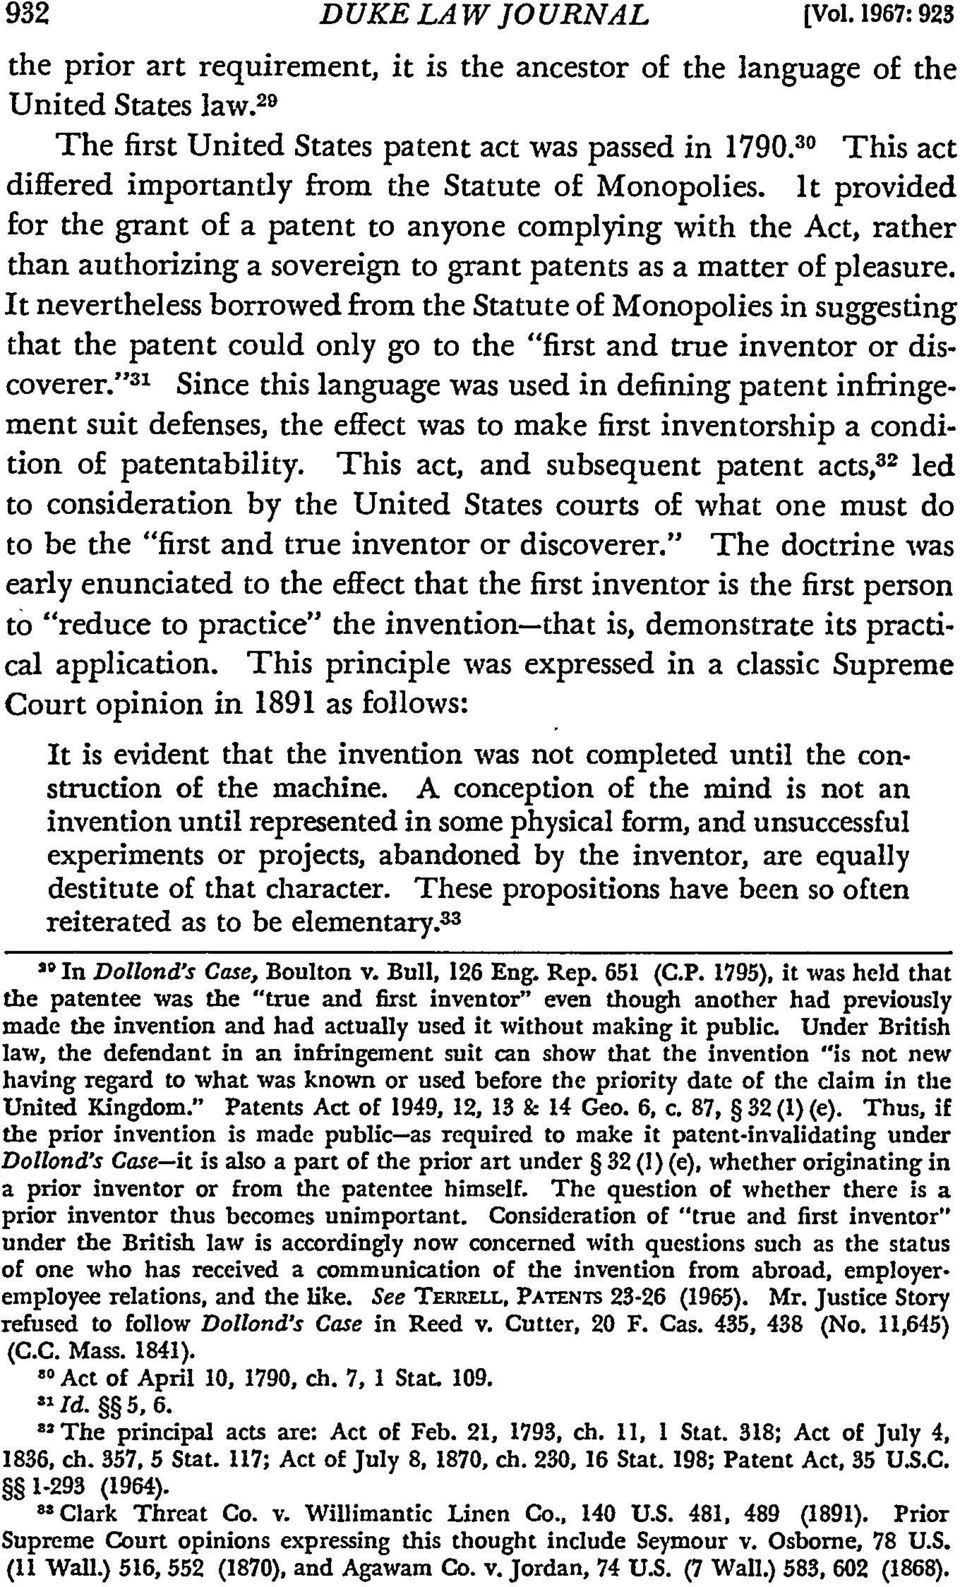 It provided for the grant of a patent to anyone complying with the Act, rather than authorizing a sovereign to grant patents as a matter of pleasure.